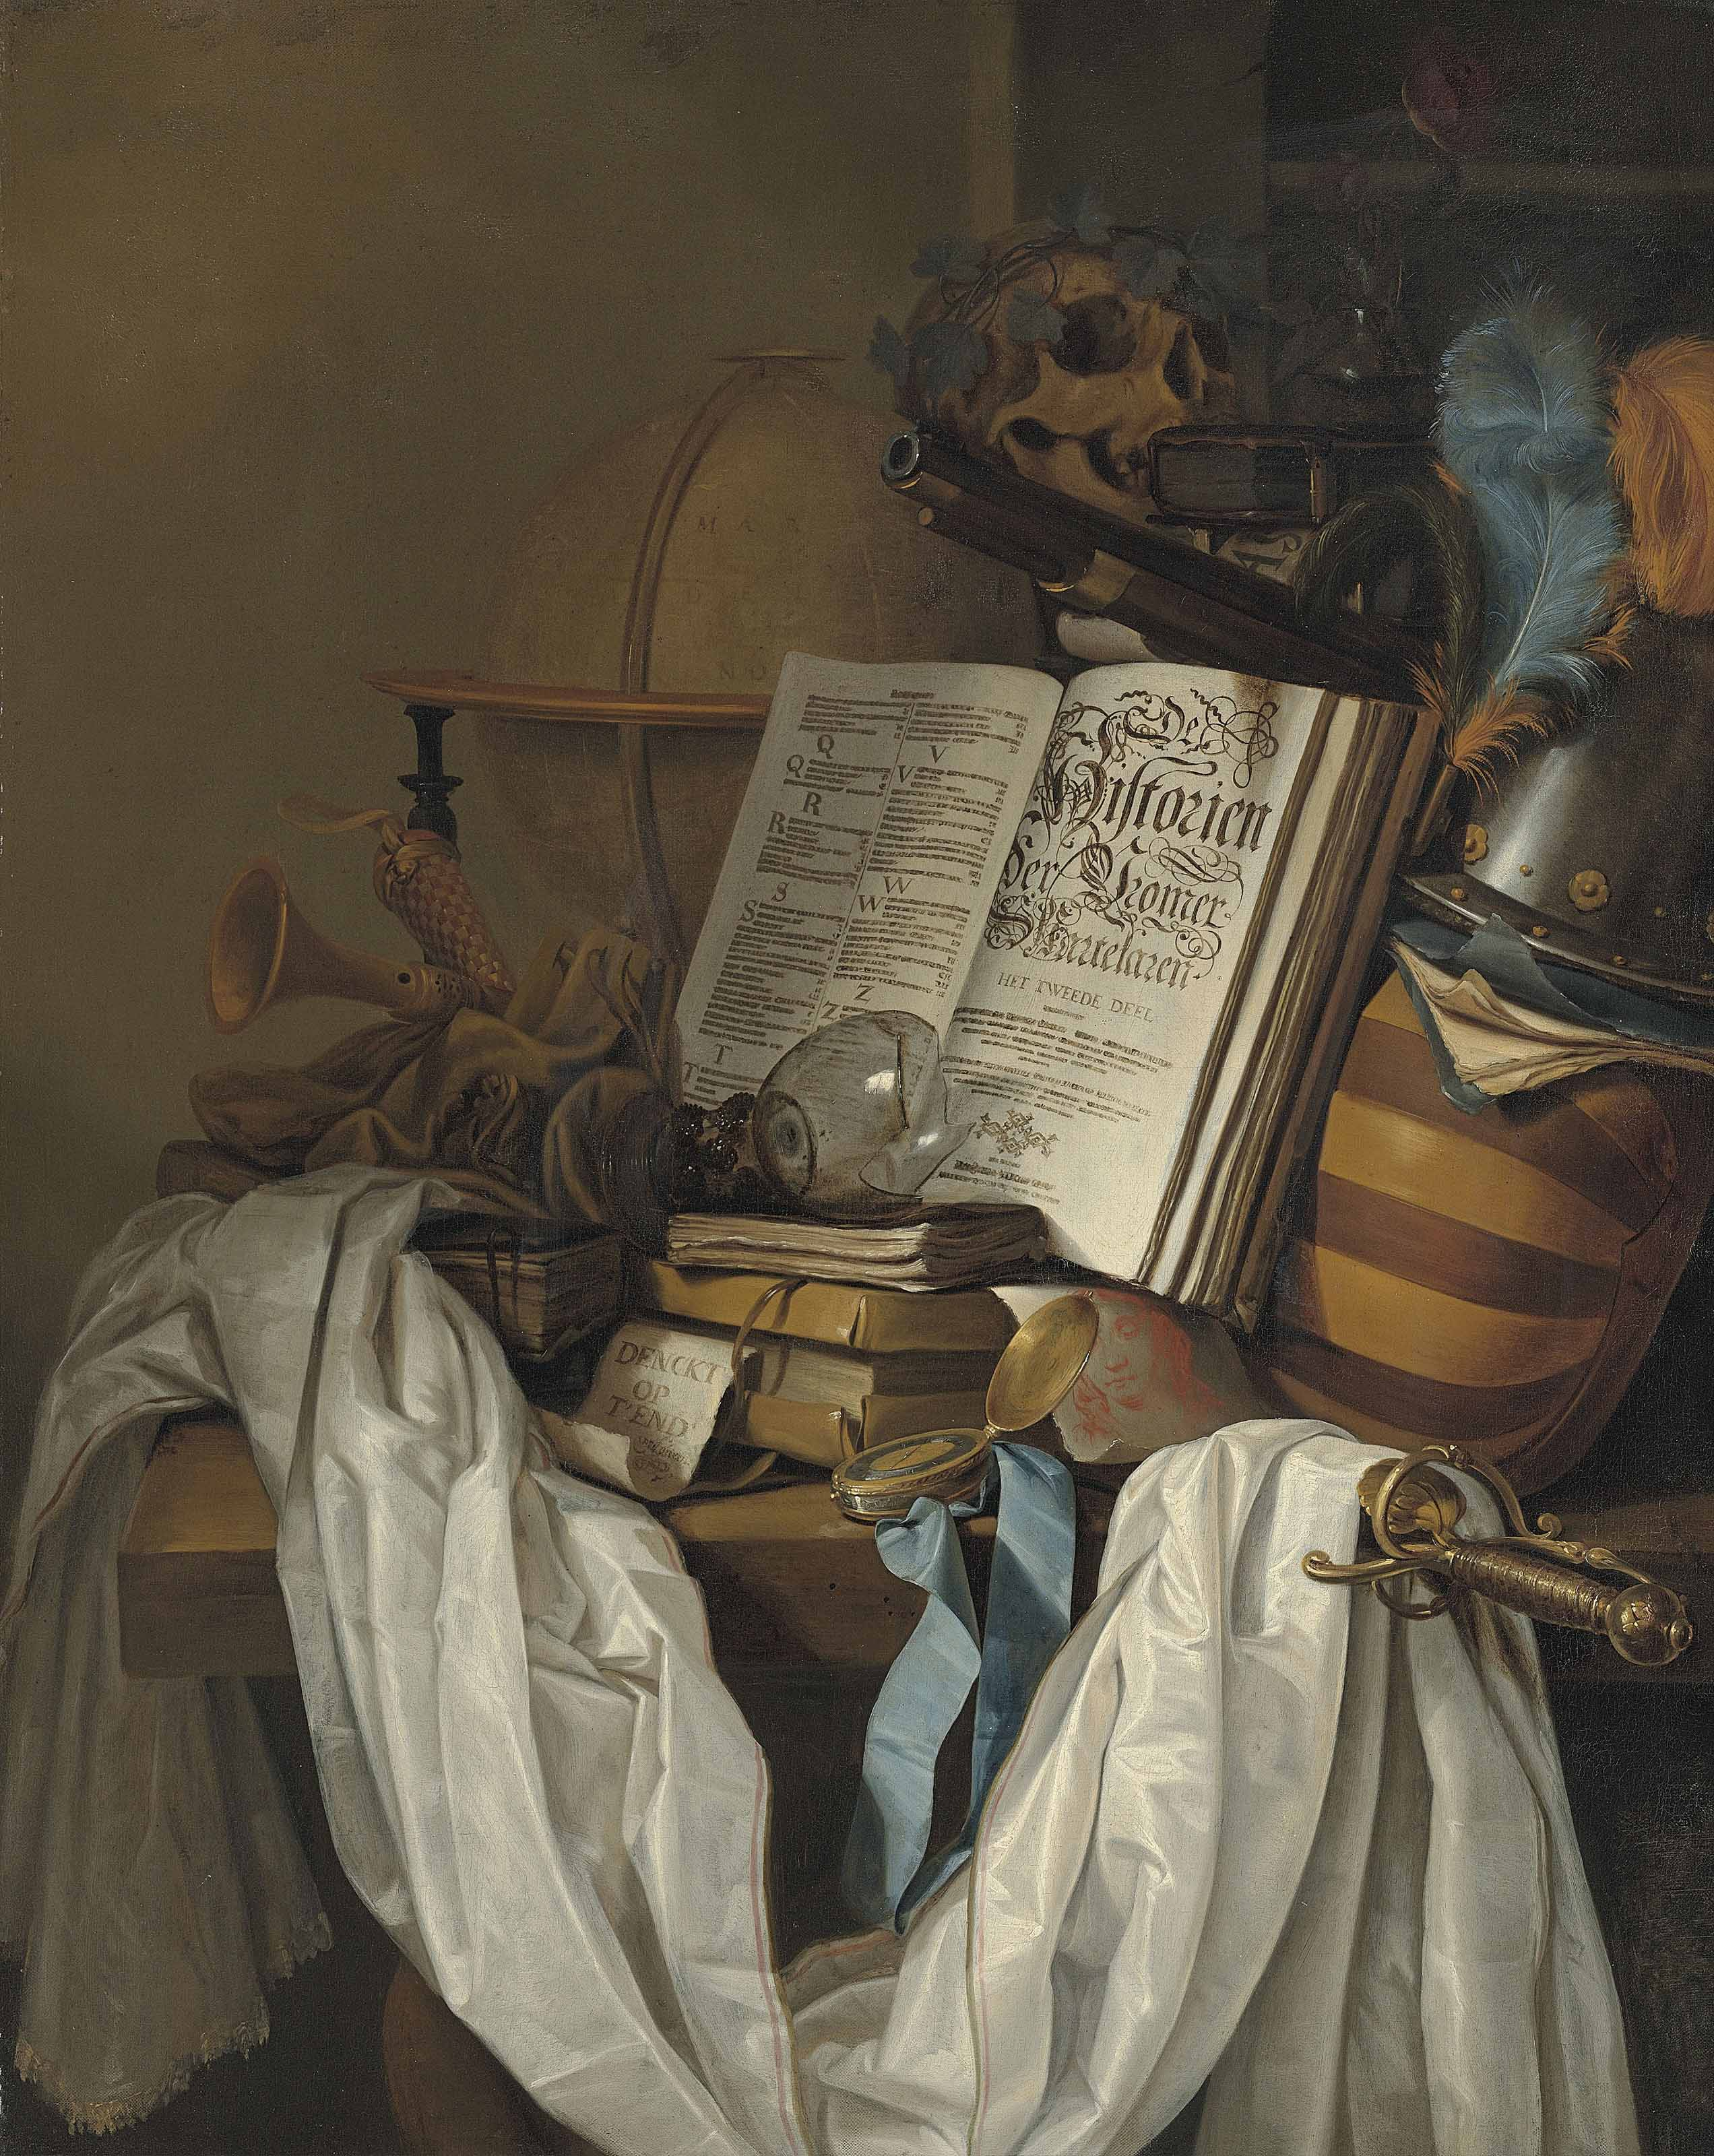 A globe, instruments, books, a broken upturned roemer, a skull and weapons on a partially draped table